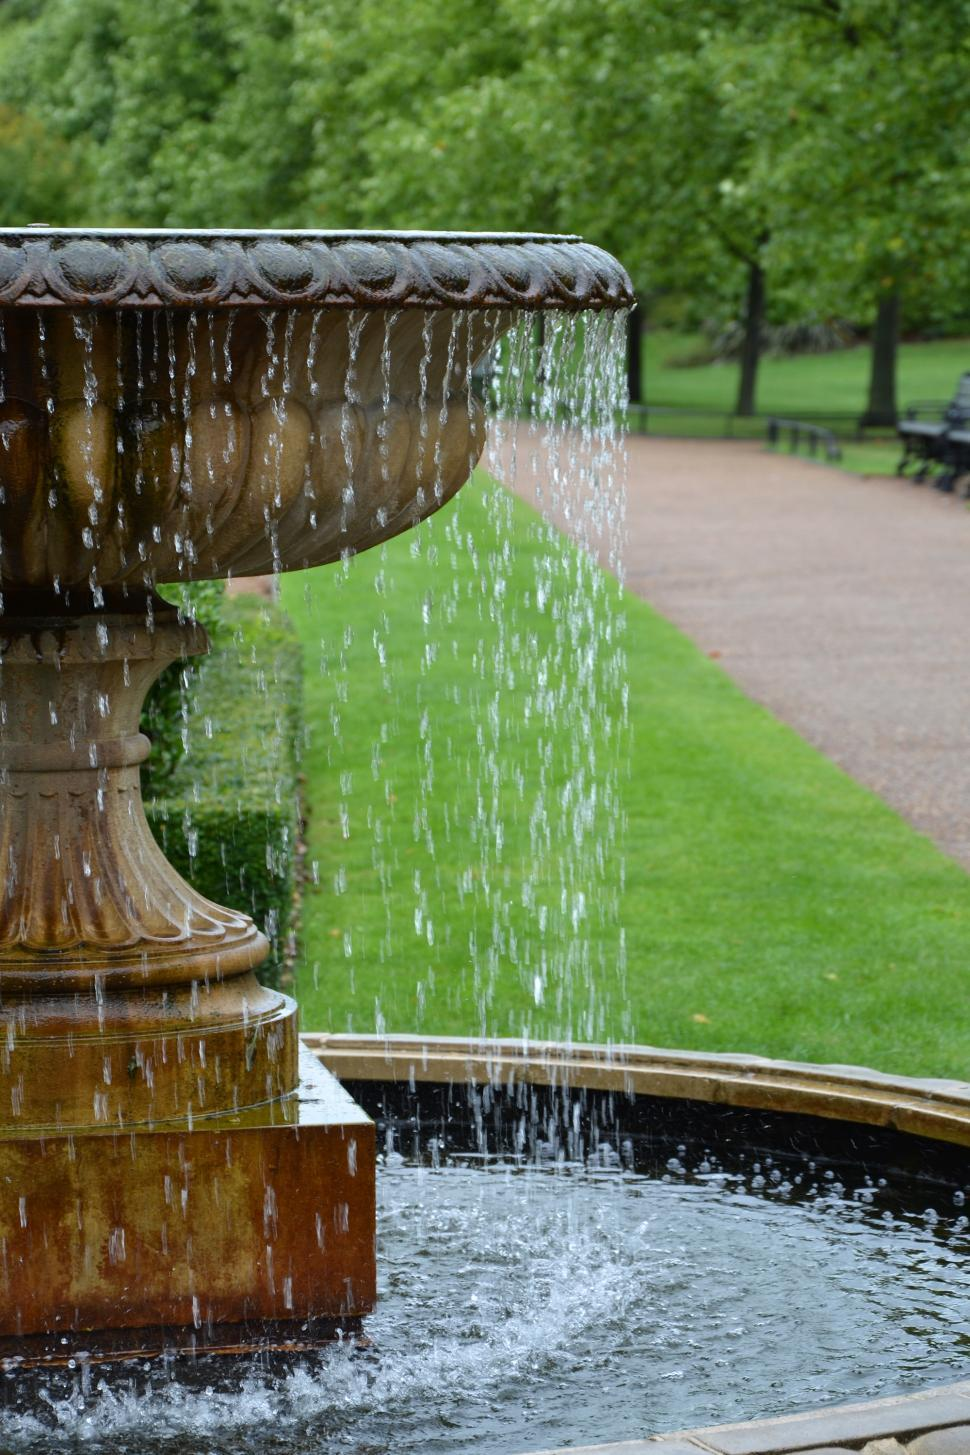 Download Free Stock Photo of Fountain in the park